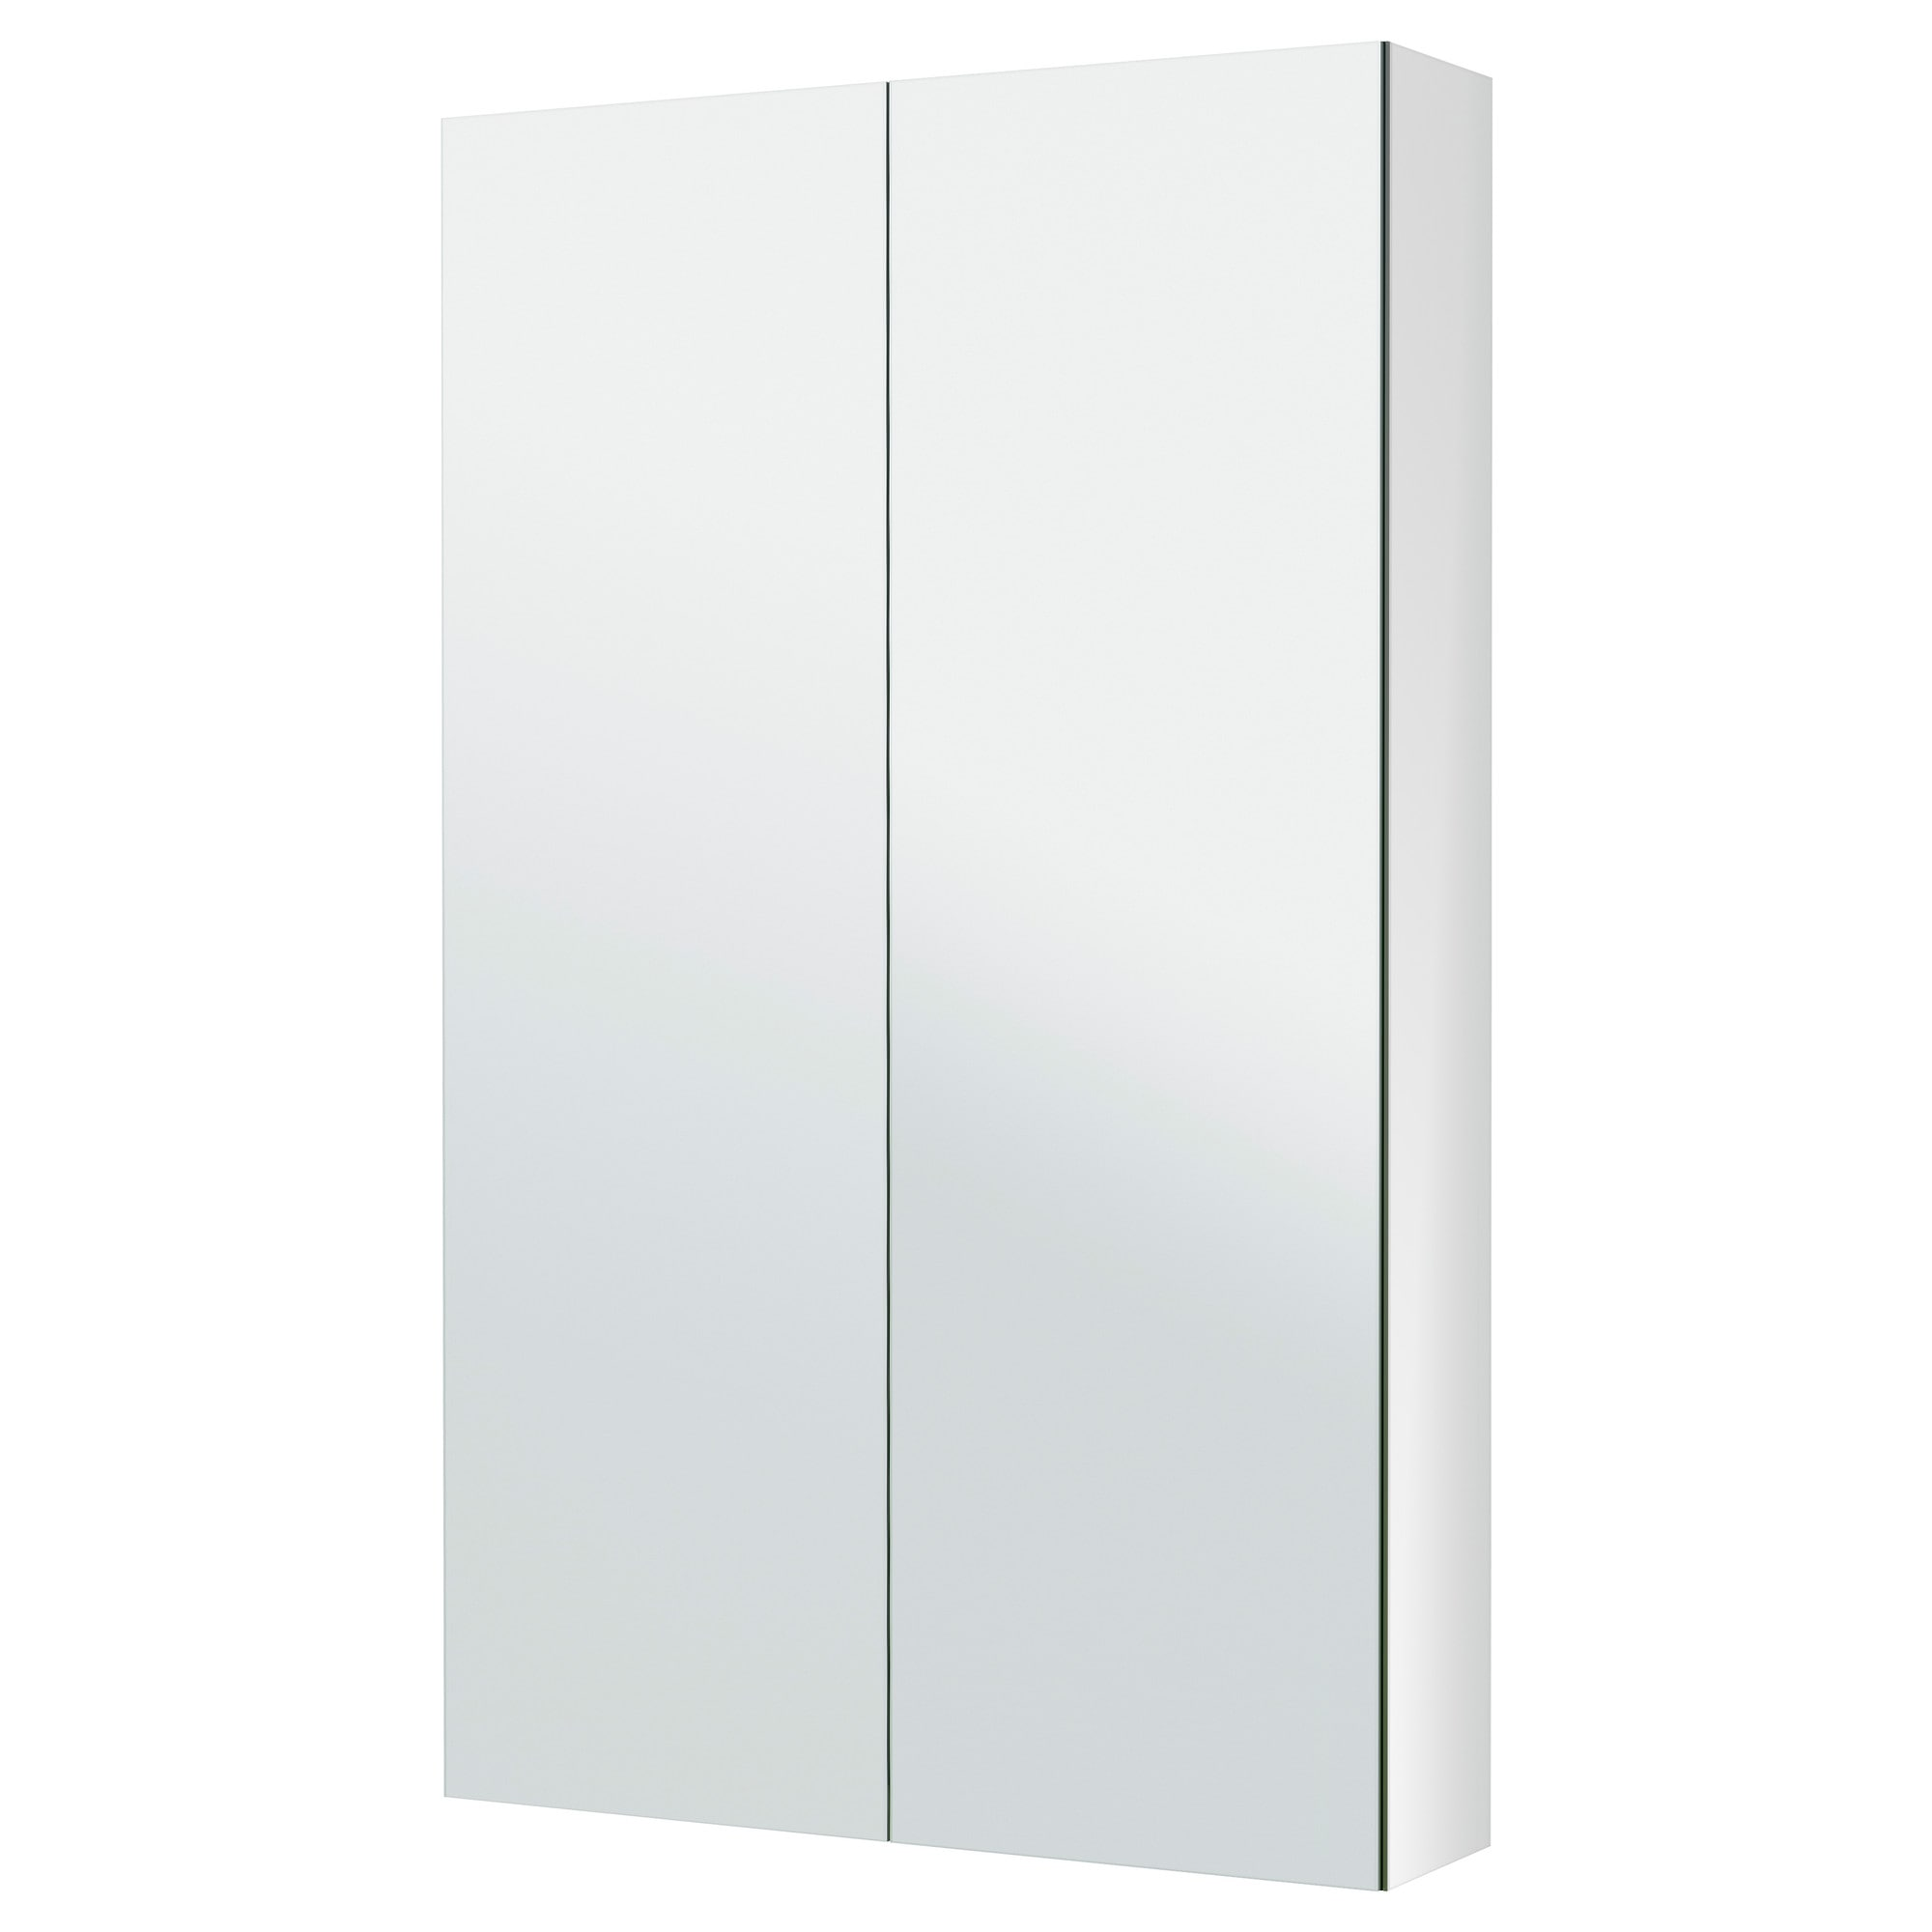 Bathroom mirror cabinets ikea - Bathroom Mirror Cabinets Ikea 0